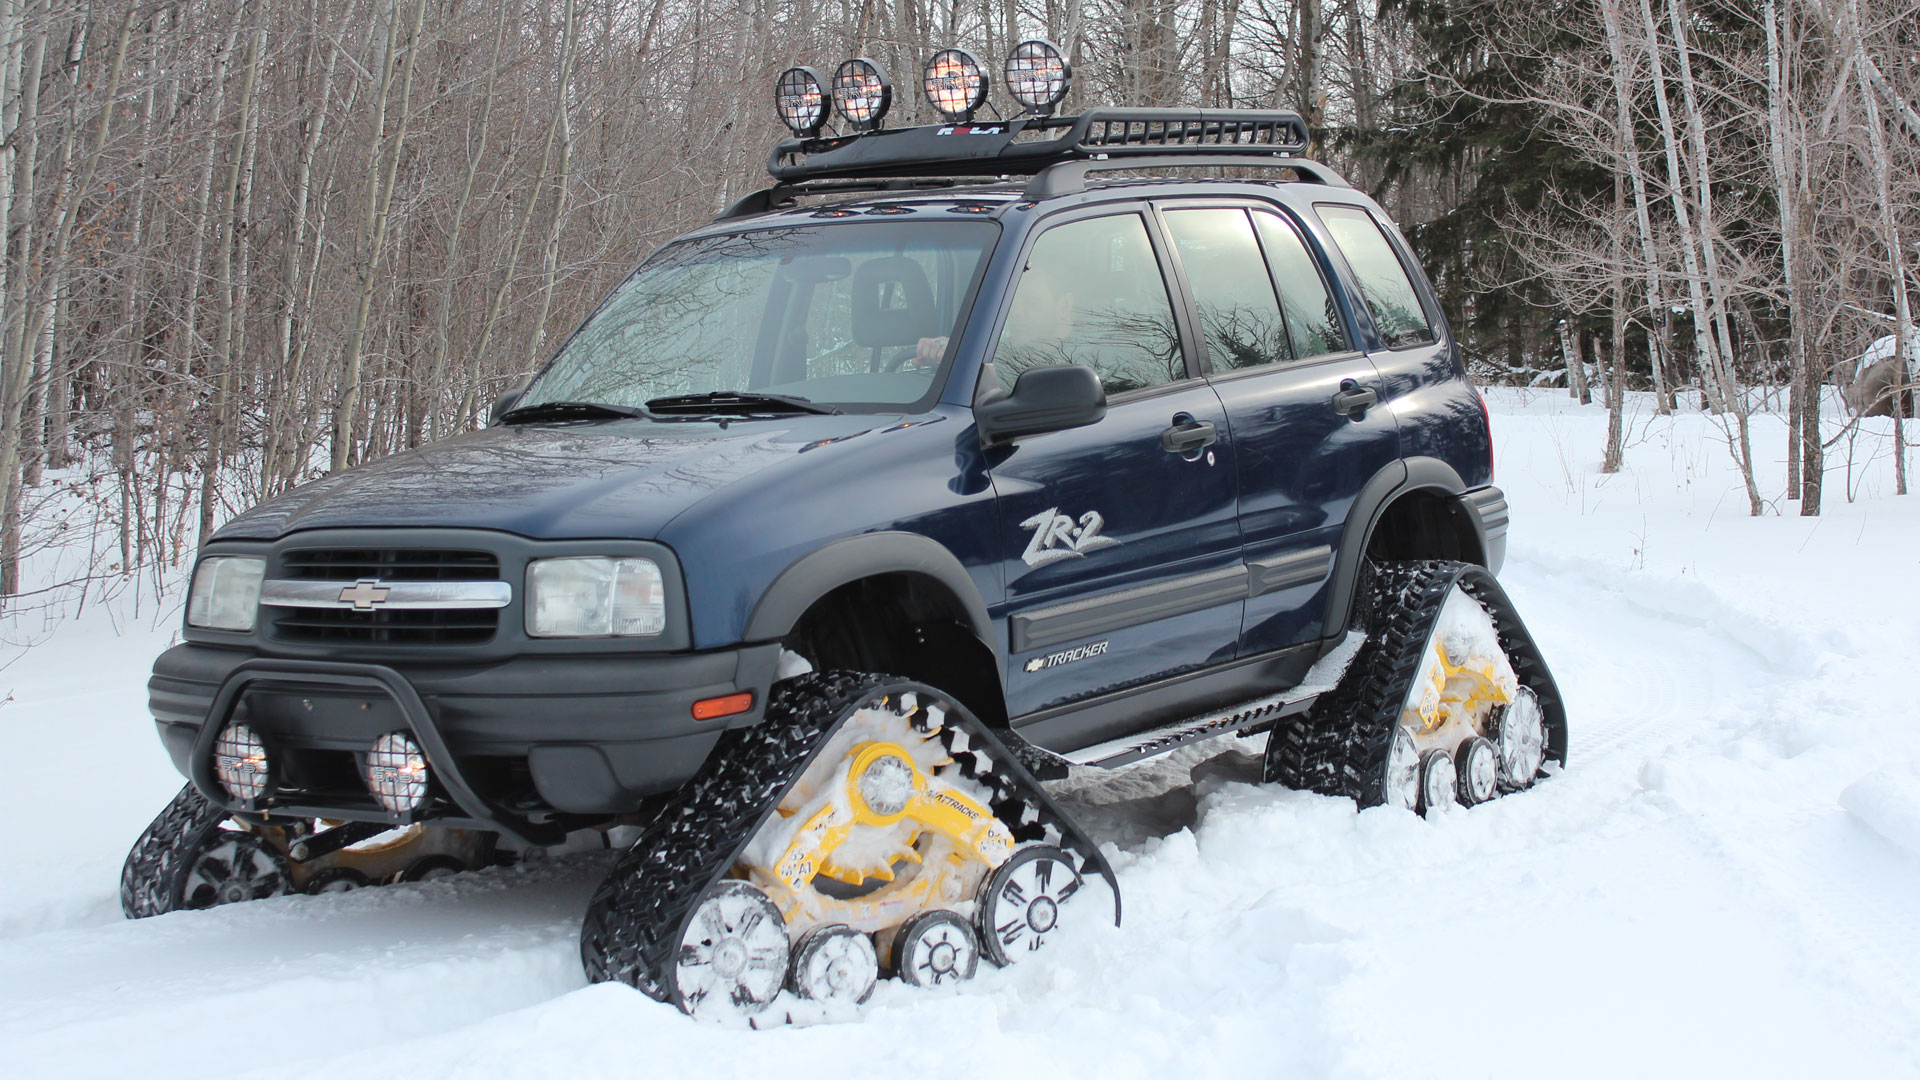 Chevy Small Suv >> Mattracks | 65 Series Side by Side & Small SUV Tracks | Bobcat Toolcat Tracks